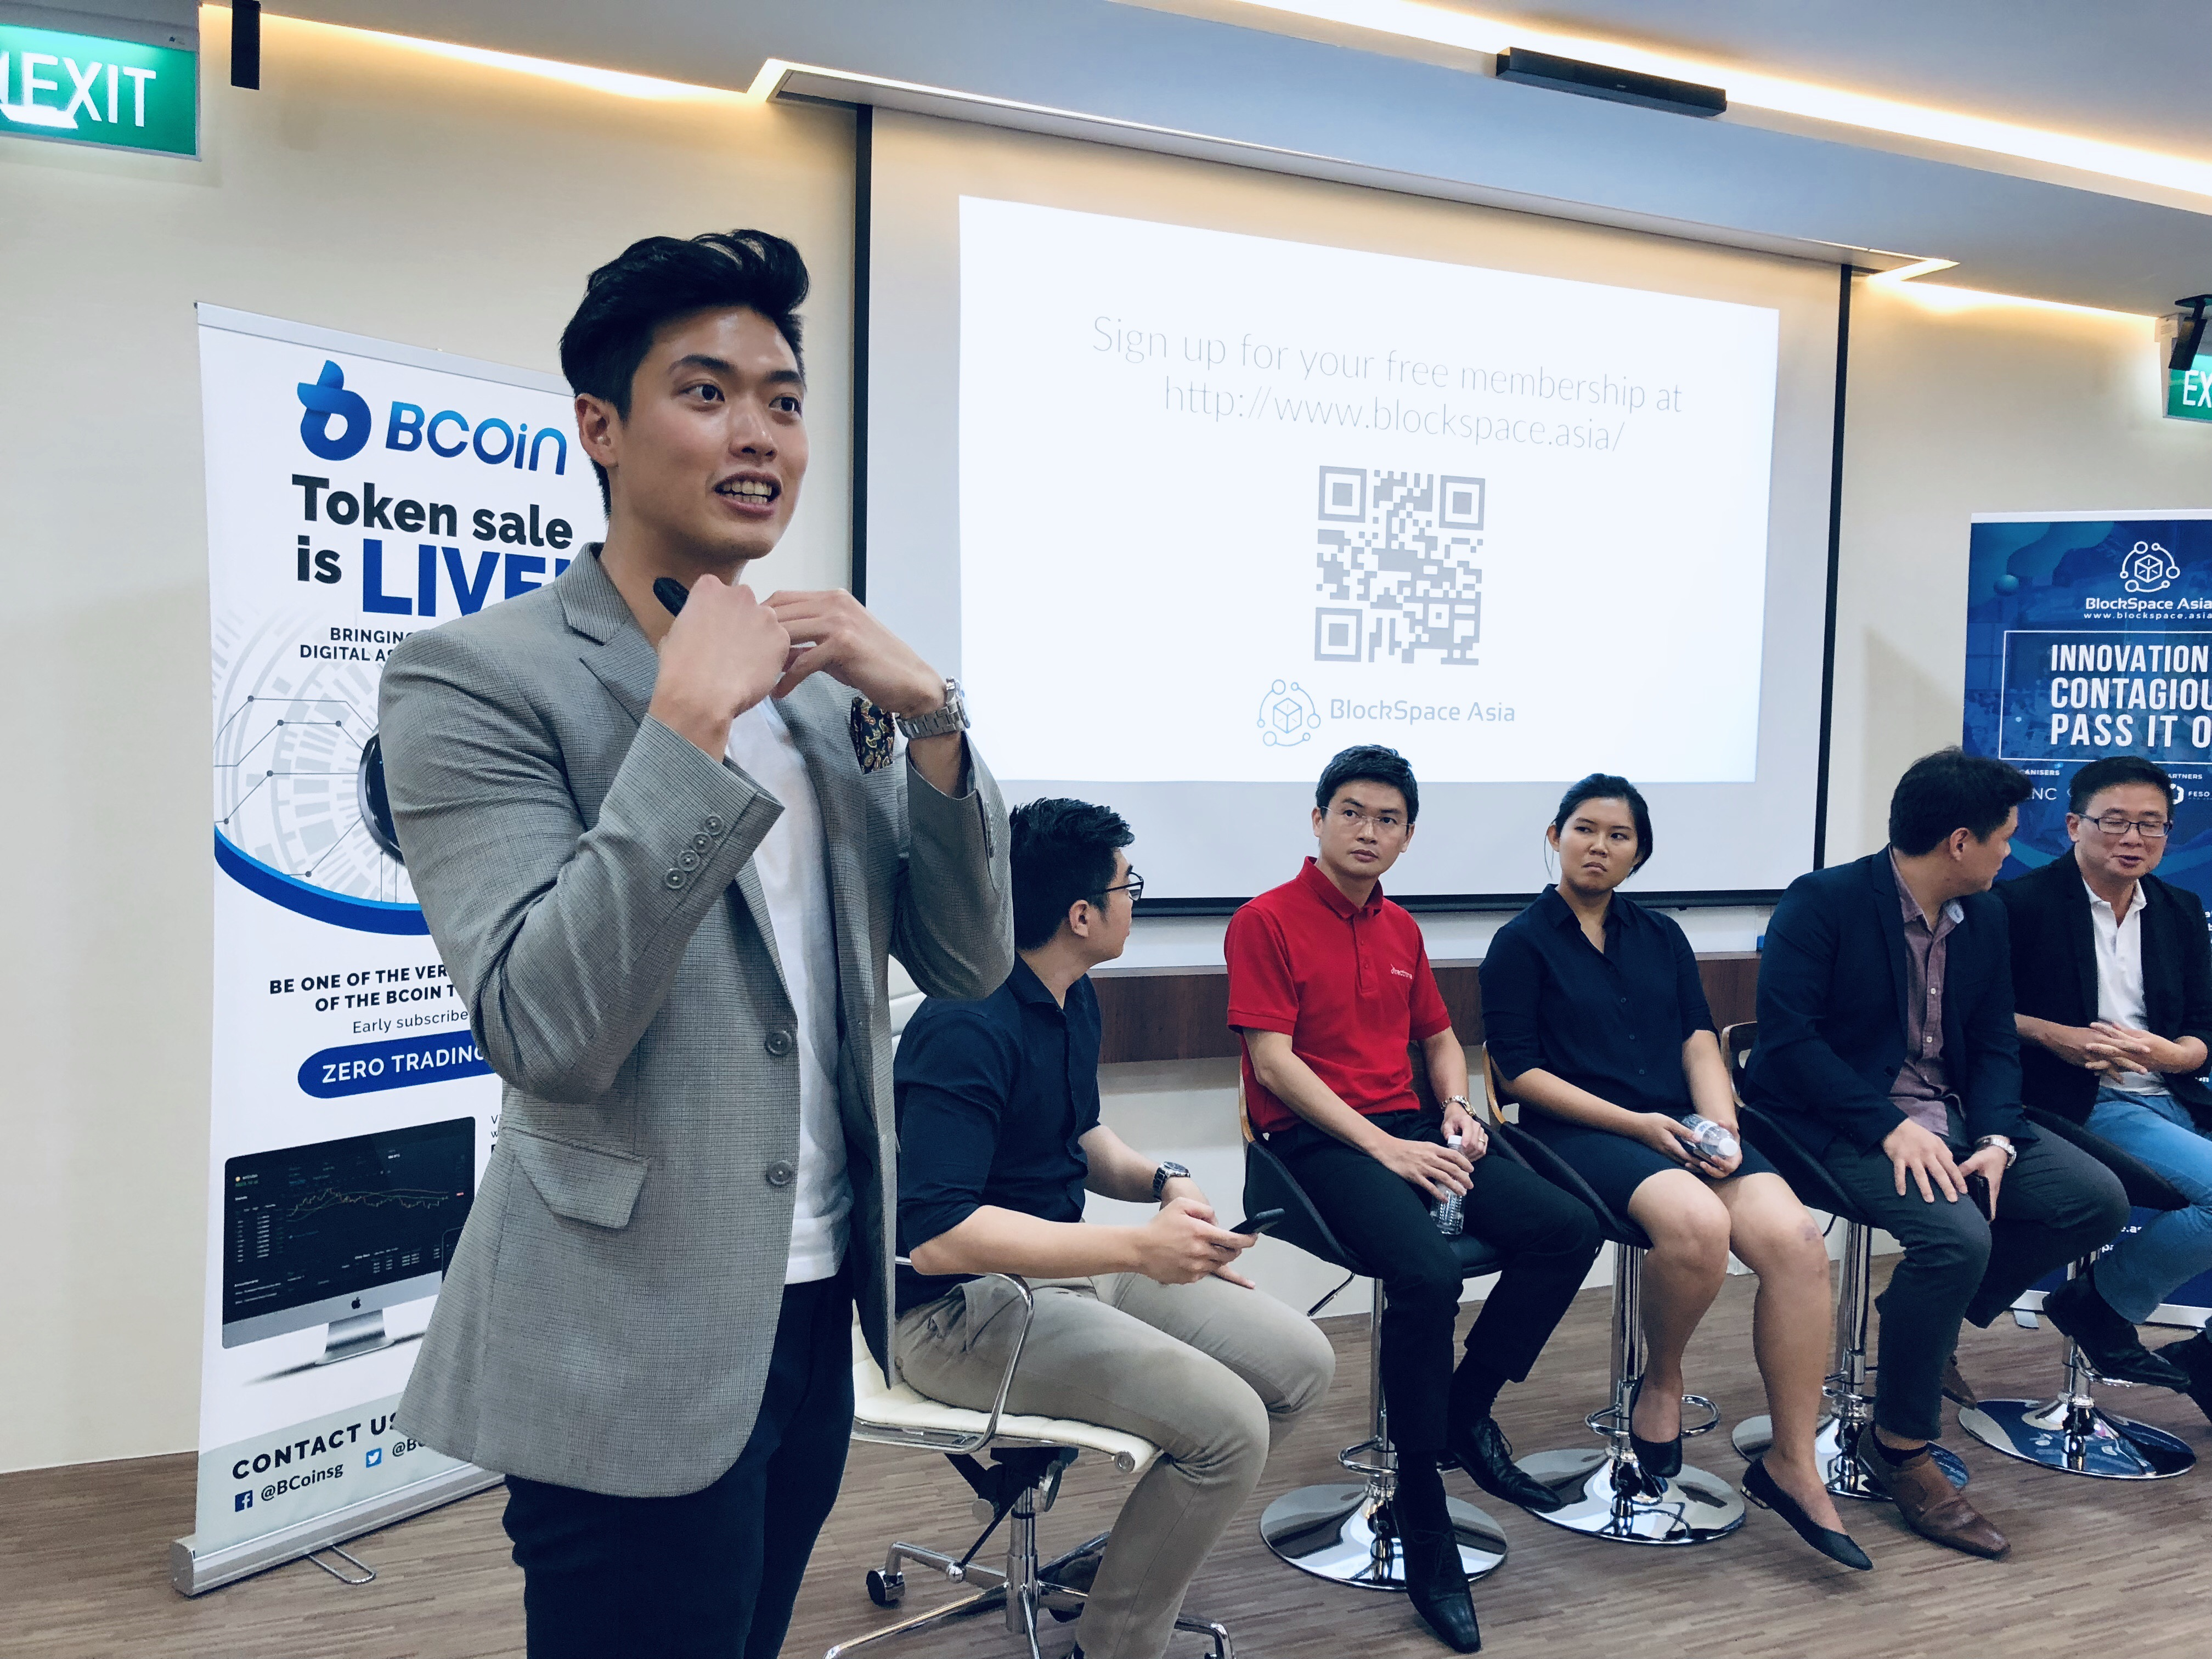 , Blockcast's special interview with Chow Pak Teng, CEO of Blockspace Asia, Blockcast.cc